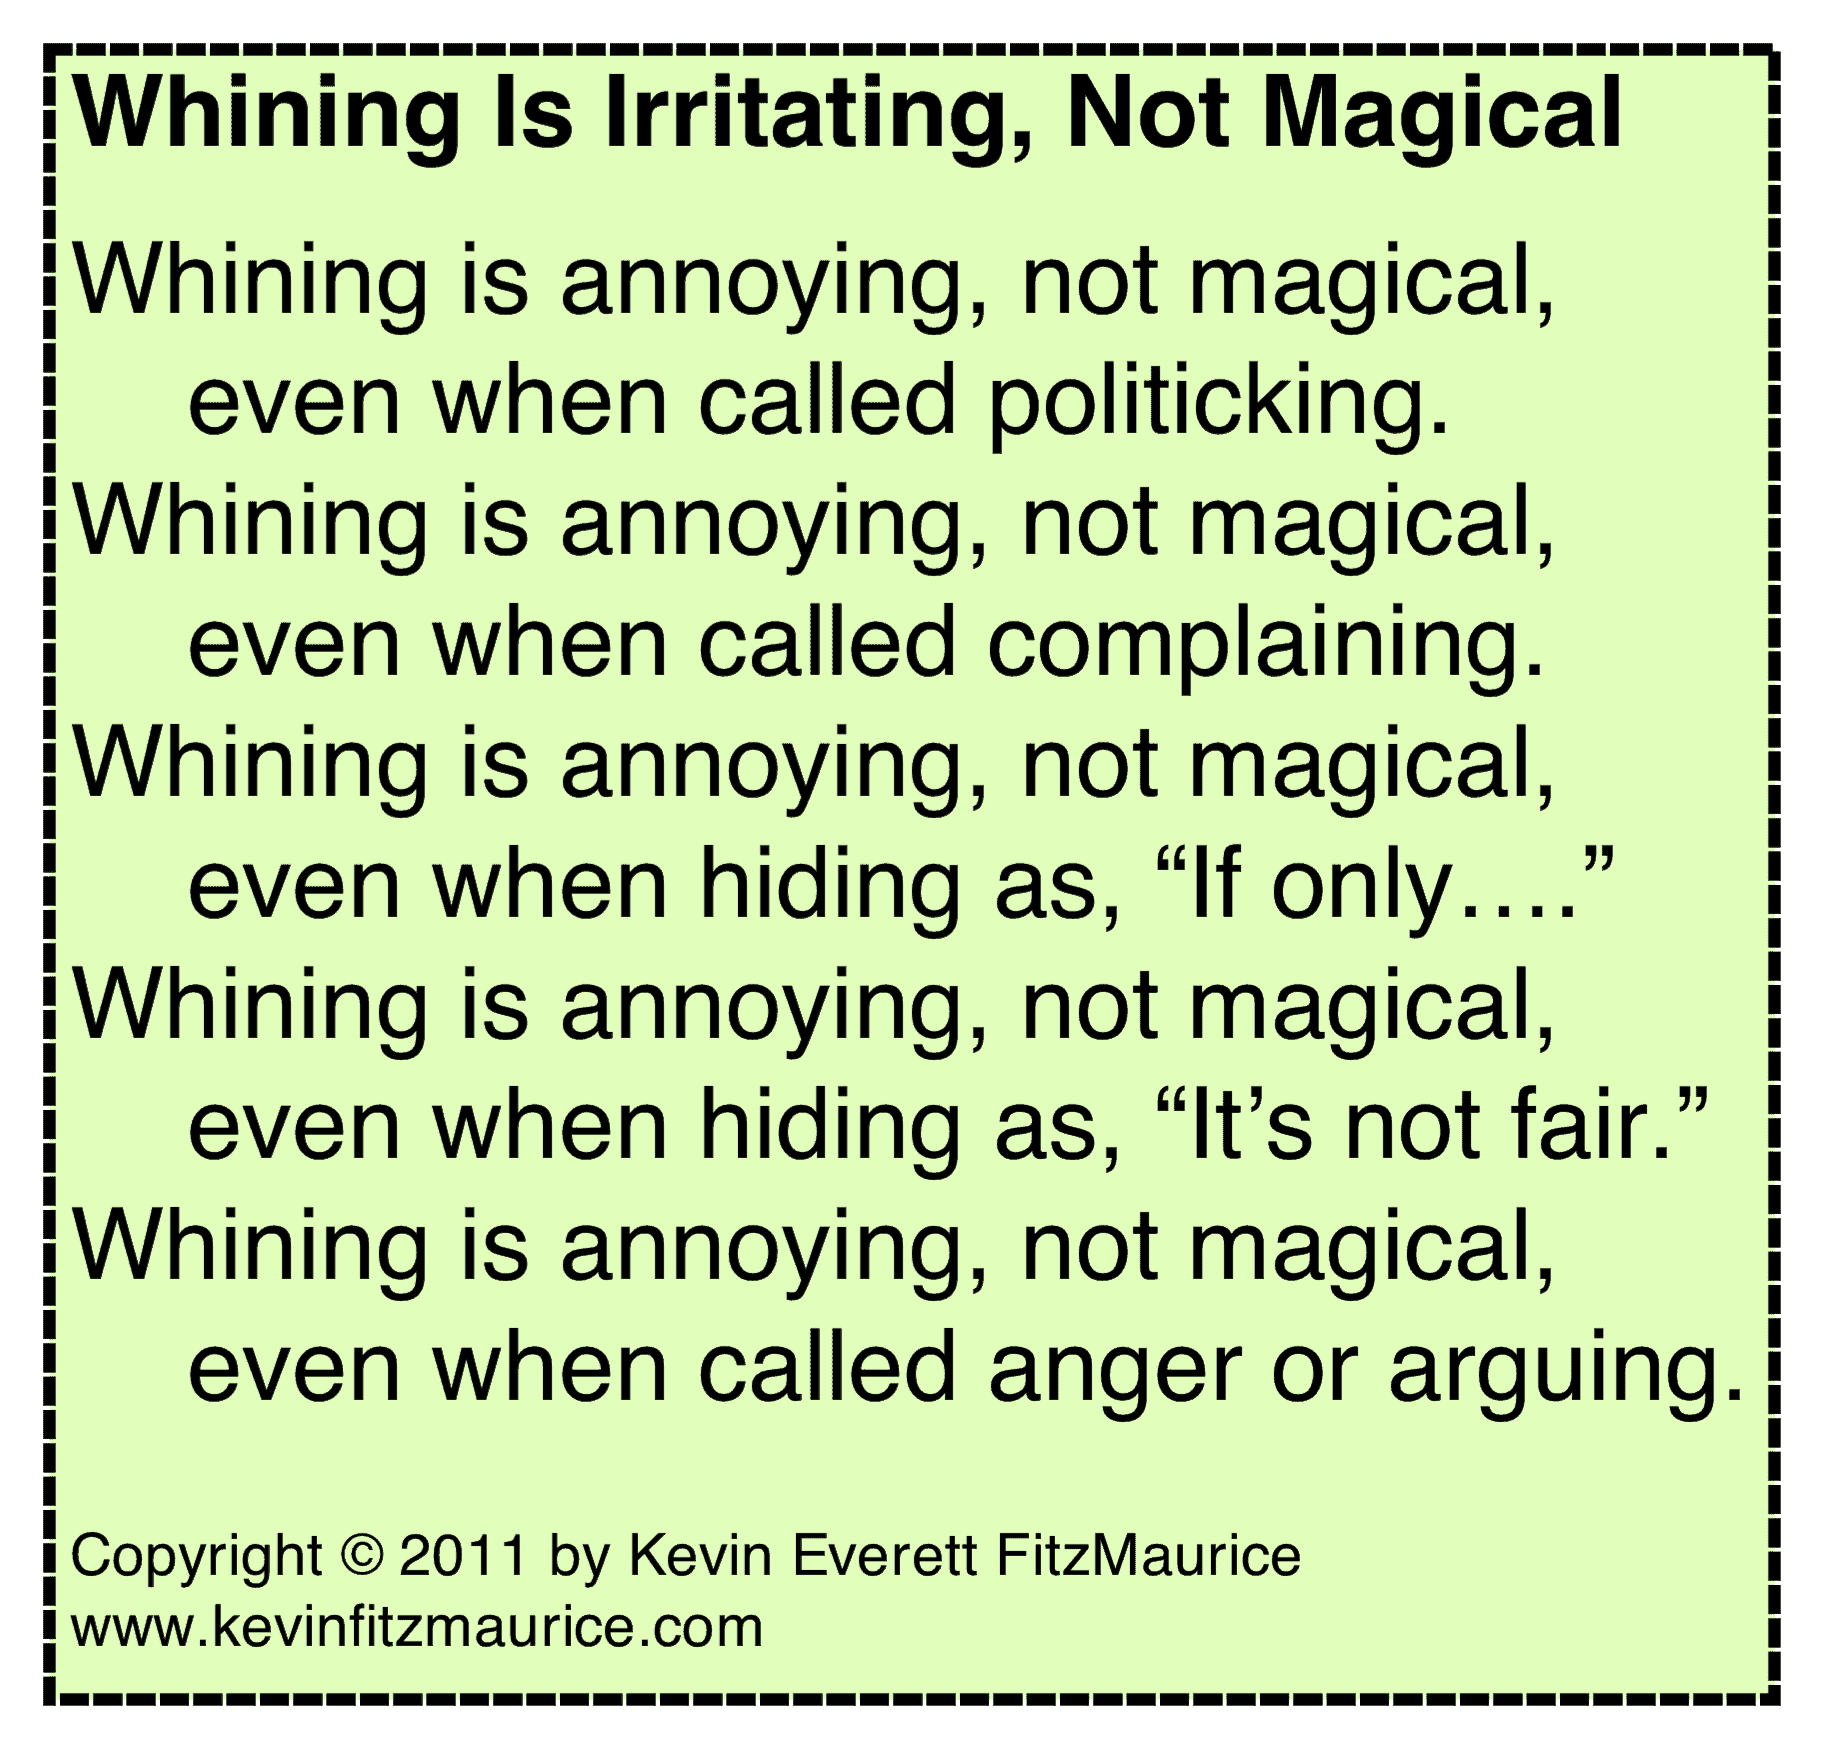 whining is not magic